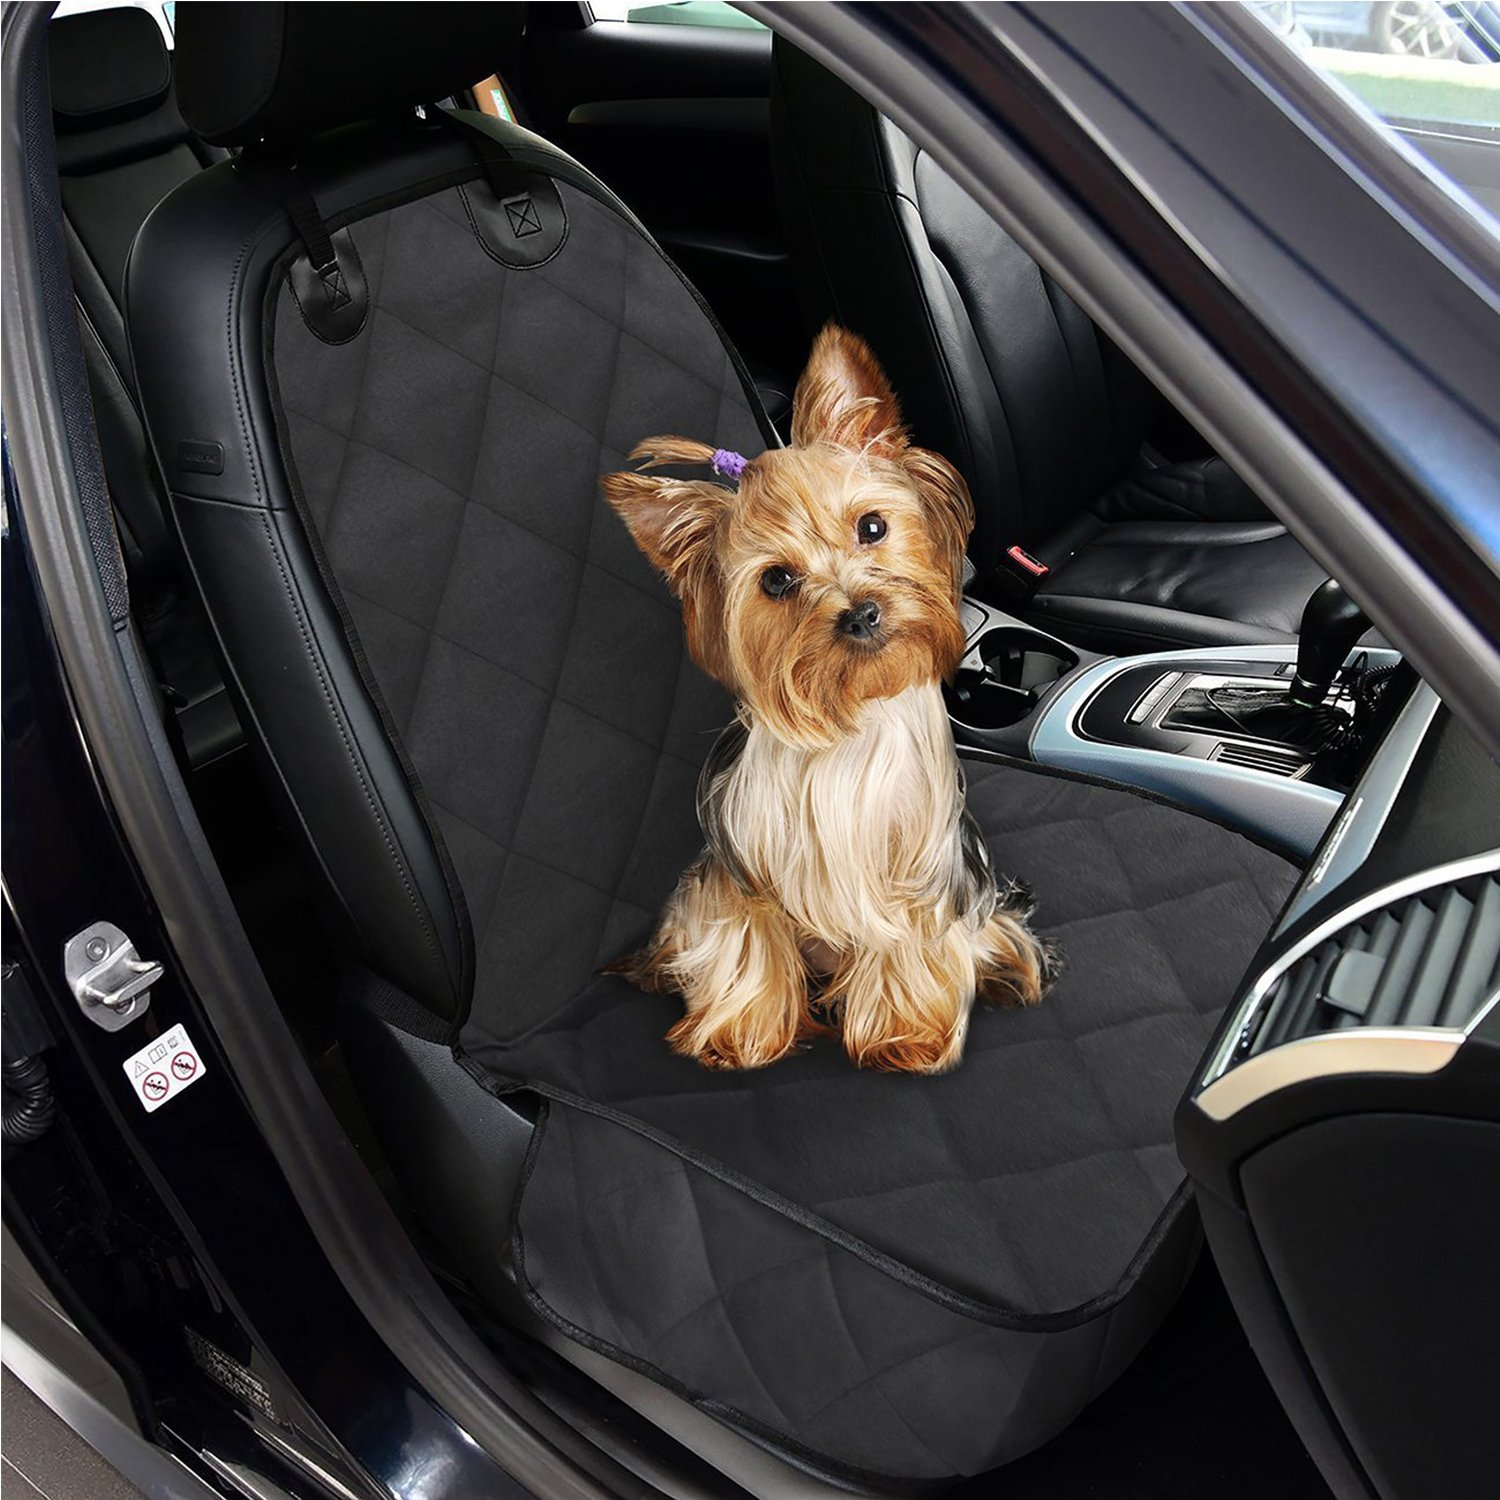 CPG DOTS Non-Slip Front Seat Cover Protector for Pets,Dog Seat Cover, Waterproof Scratch Proof Backing, Hammock Convertible, Quilted, Padded,for Cargo Liner,Trunks and SUVs,Black (Single Seat)